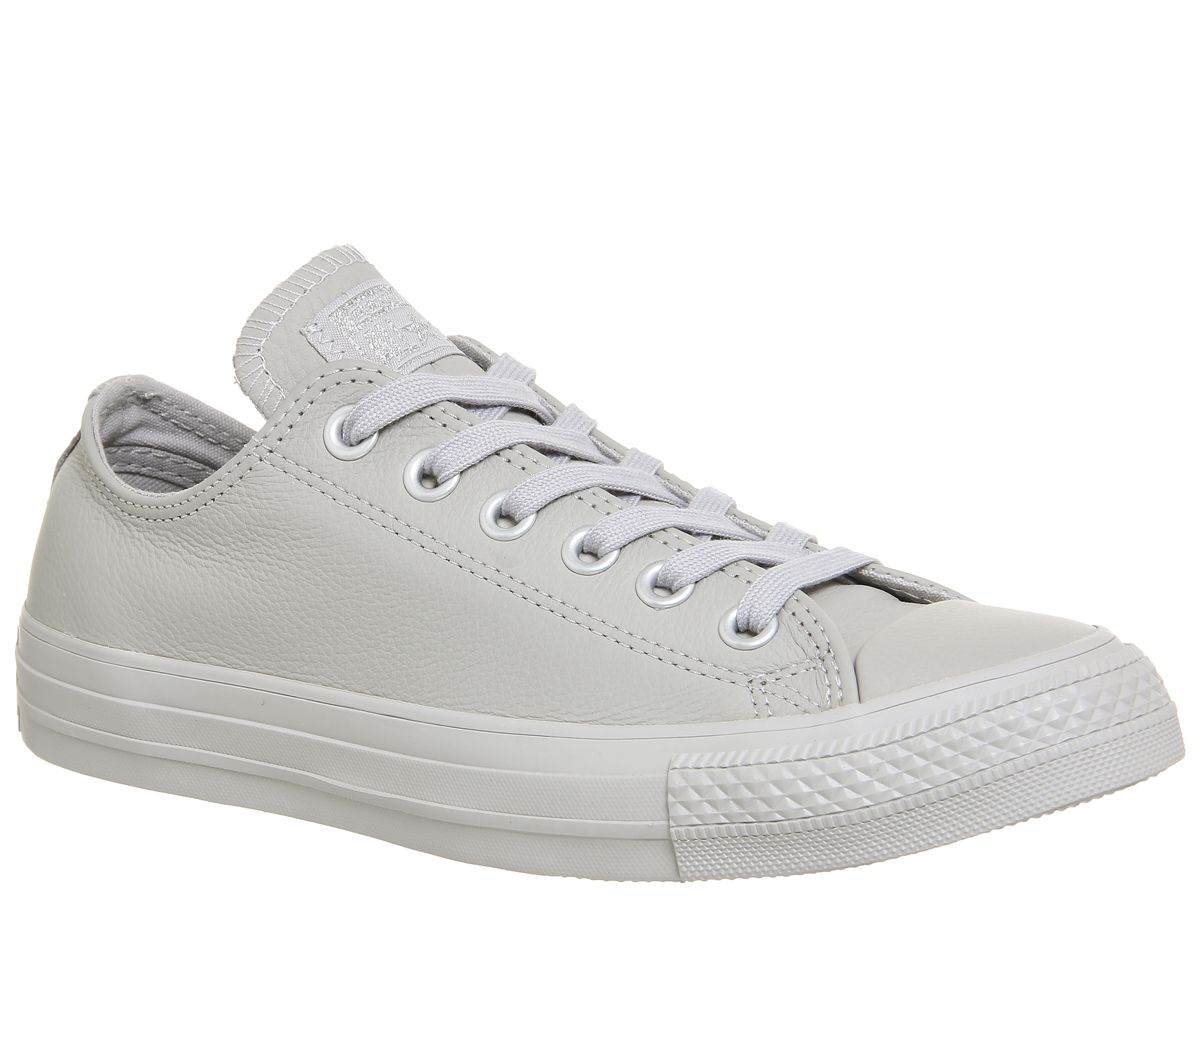 36cd9e10bc97 Converse All Star Low Leather Ash Grey Silver Exclusive - Hers trainers